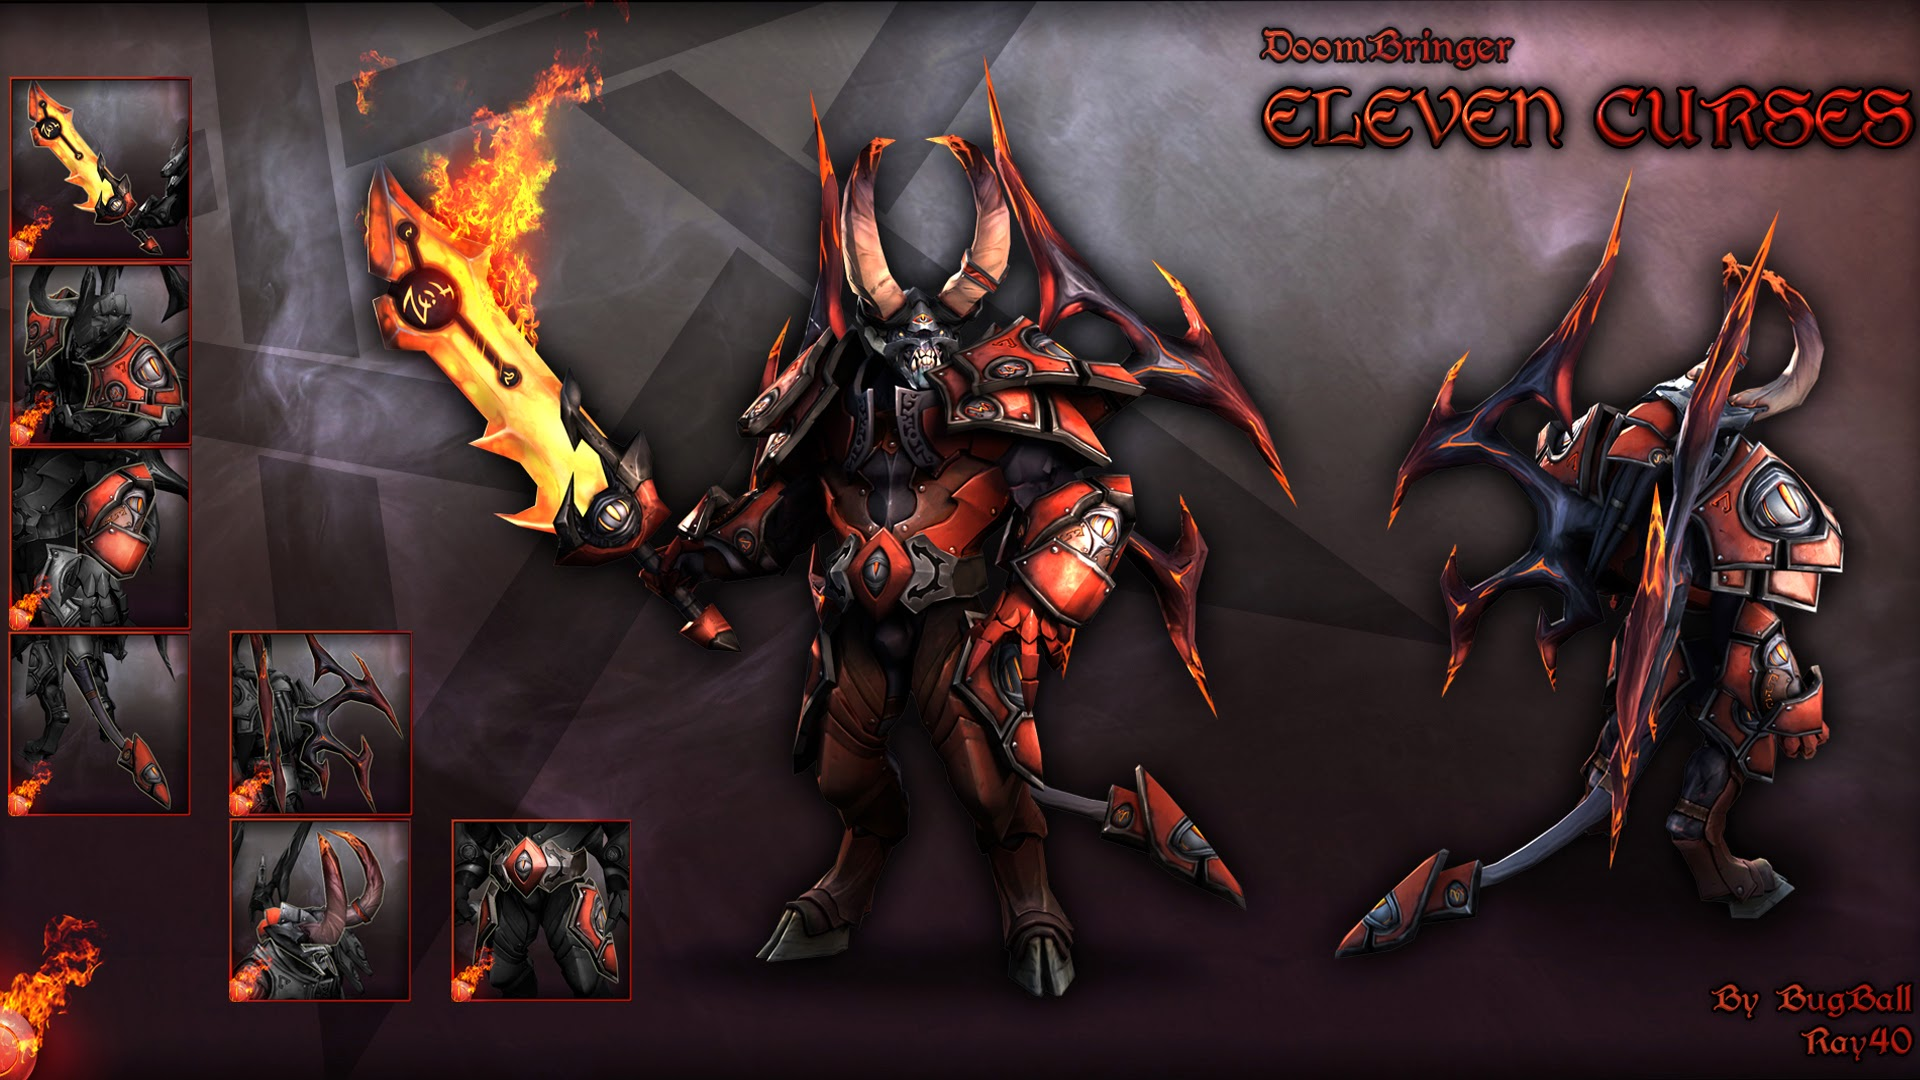 lucifer the doom dota 2 hero hd wallpaper image picture 1920x1080 5k 1920x1080